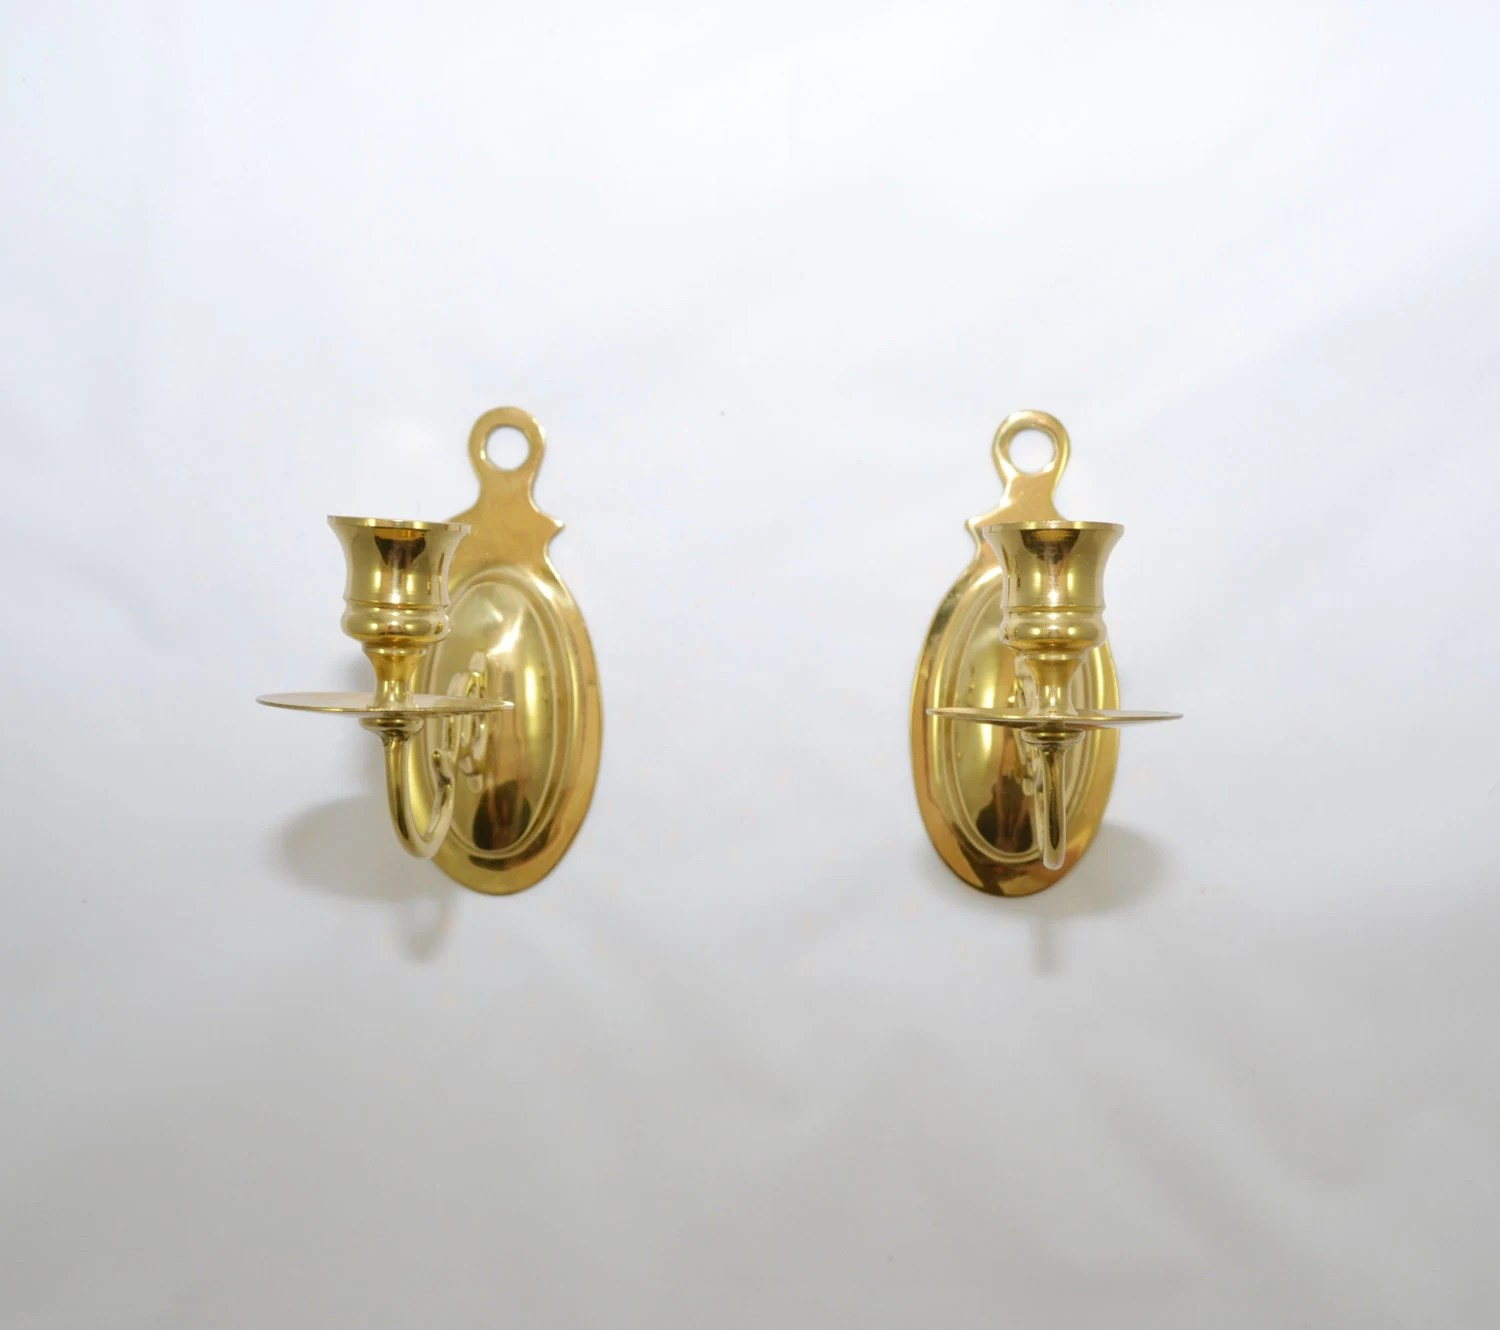 Vintage Wall Sconce Candle Holder Brass Wall by JudysJunktion on Wall Sconces Candle Holders id=11459